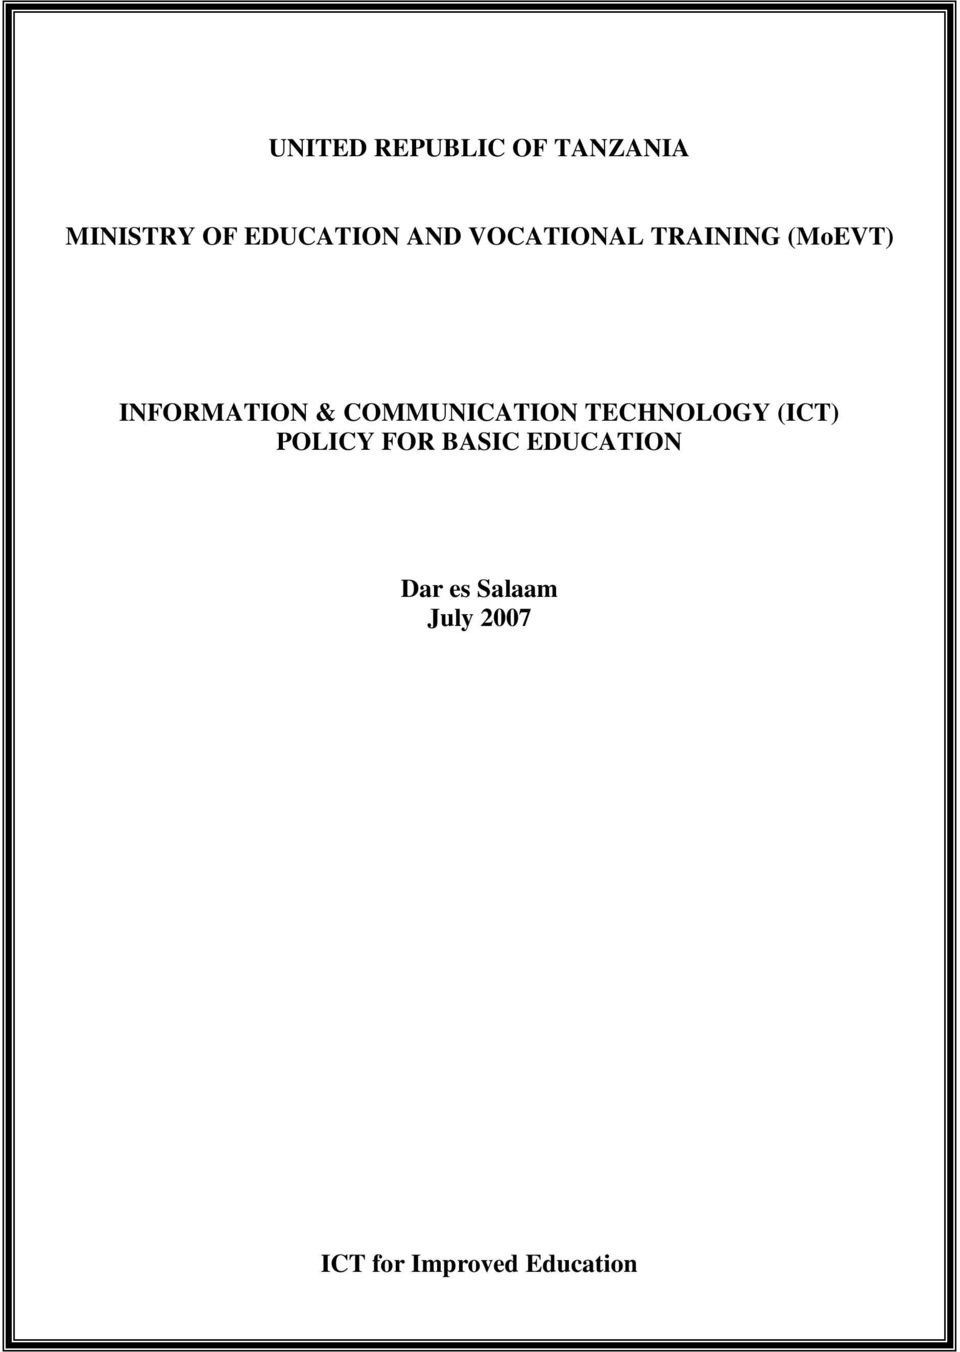 COMMUNICATION TECHNOLOGY (ICT) POLICY FOR BASIC